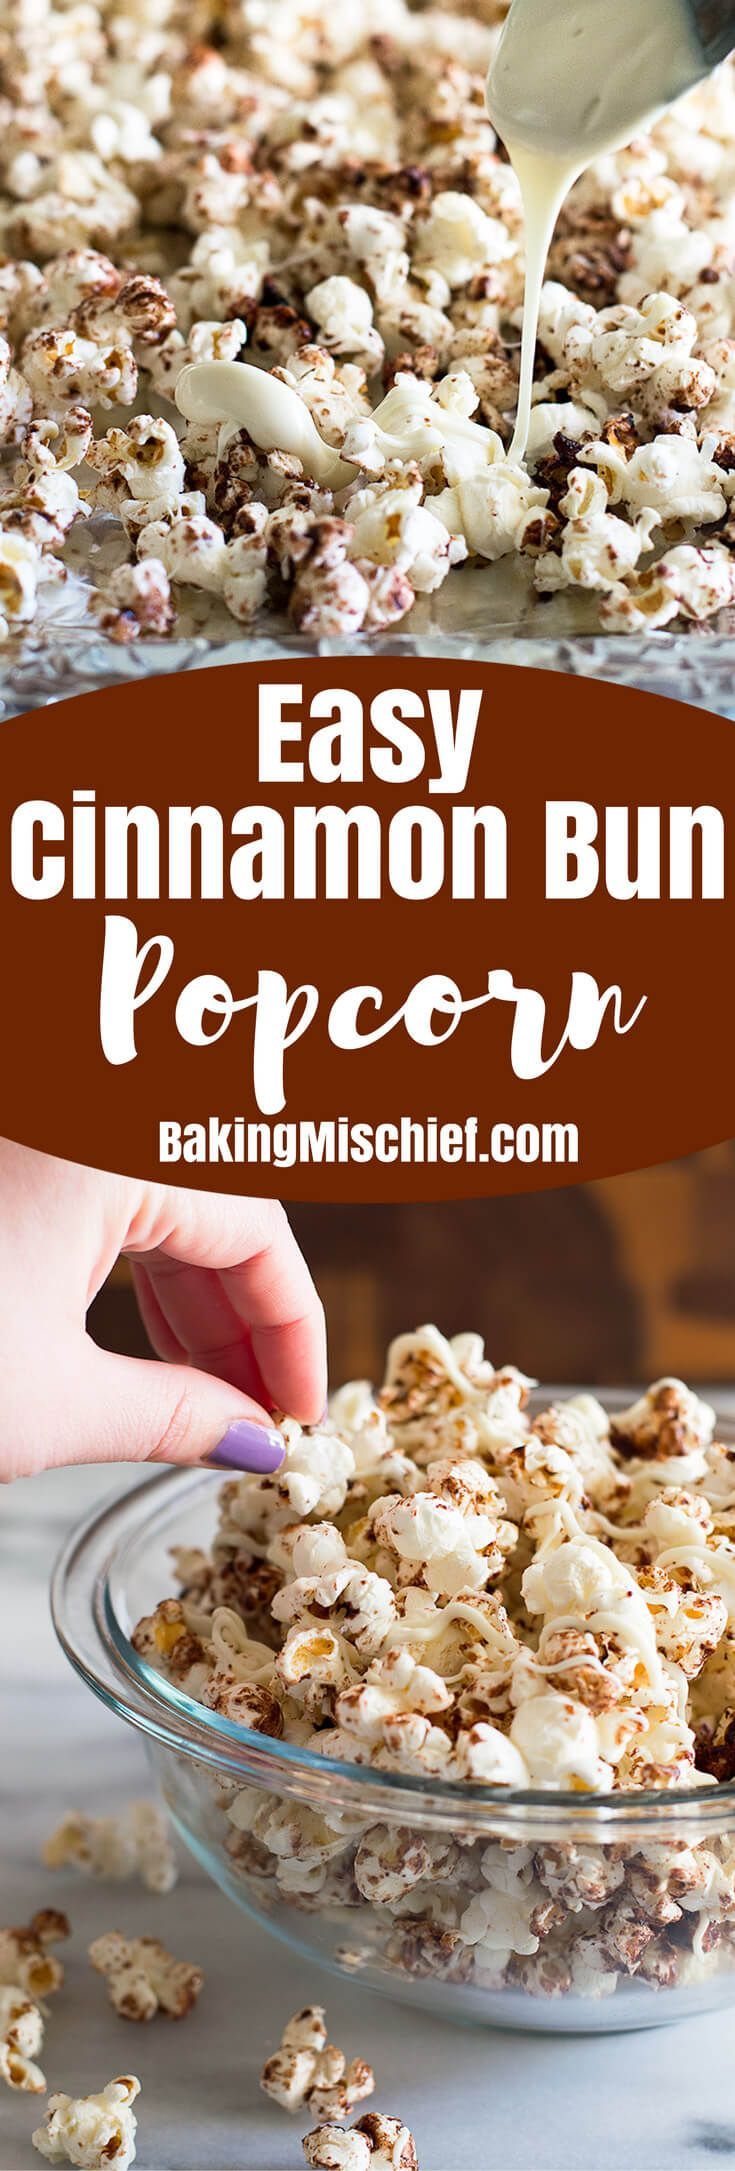 Cinnamon Bun Popcorn with White Chocolate drizzle makes a fabulous easy snack for movie night! From Baking Mischief